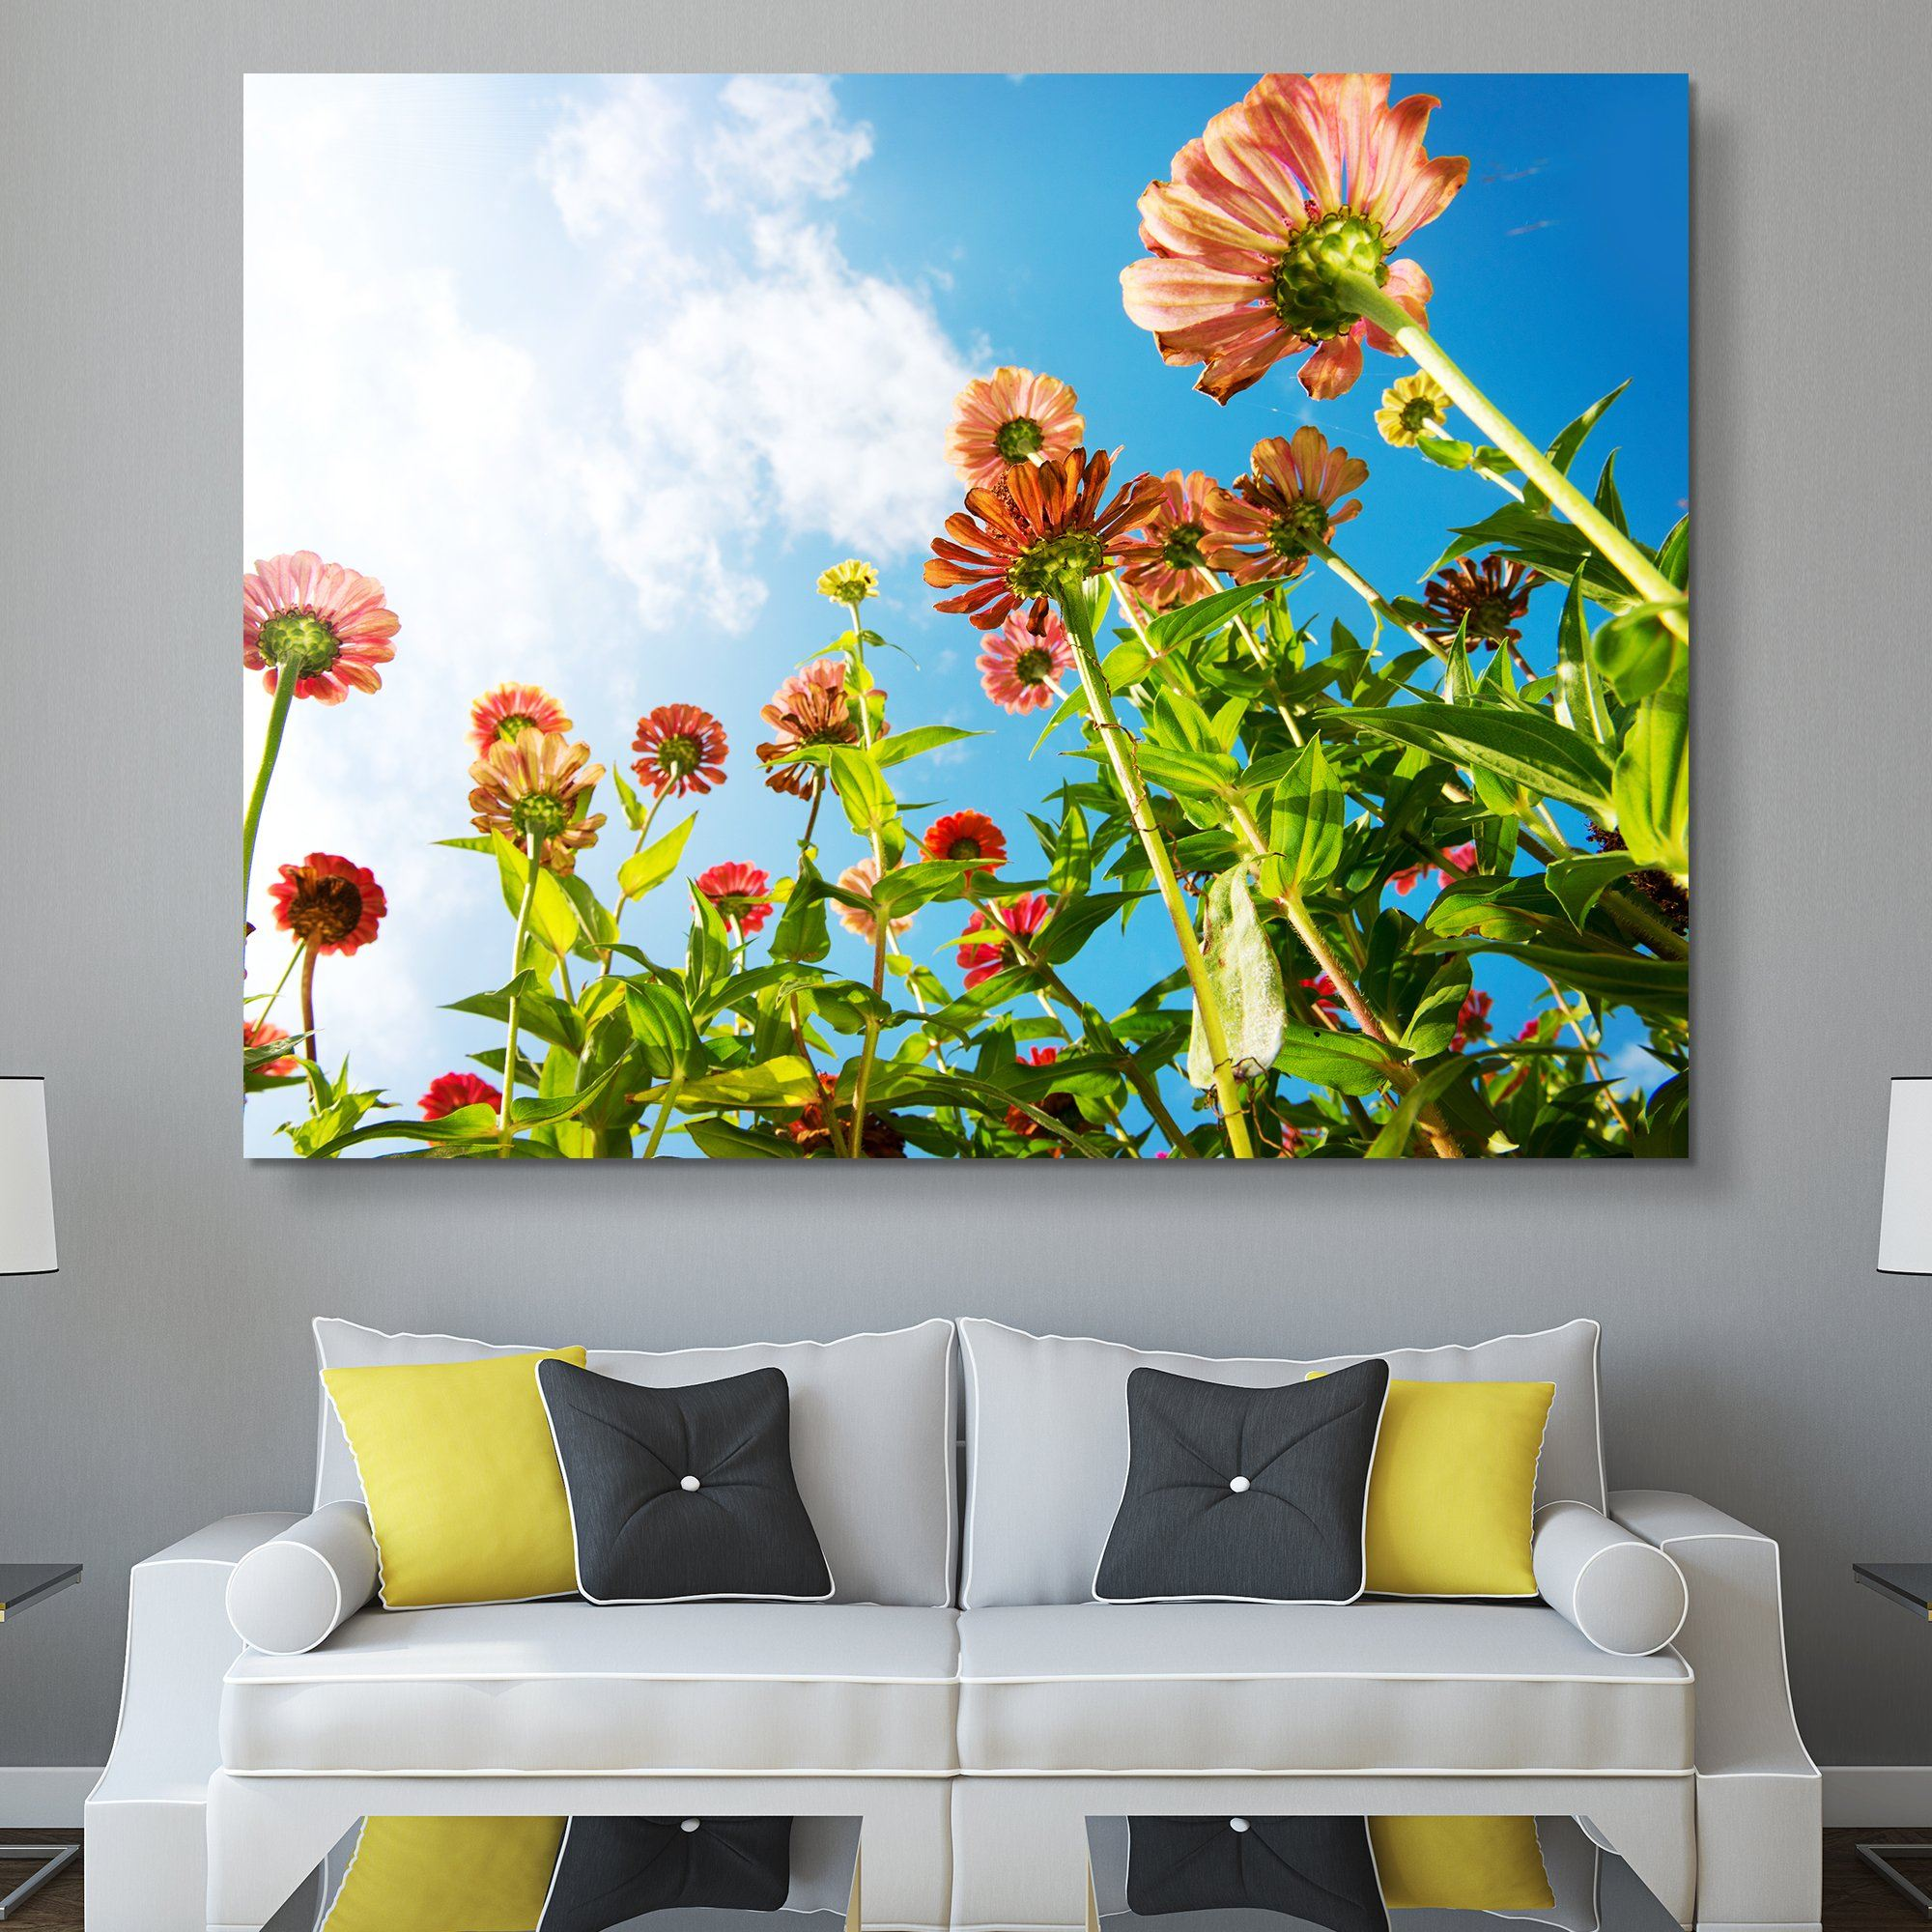 Flowers Over Blue Sky wall art